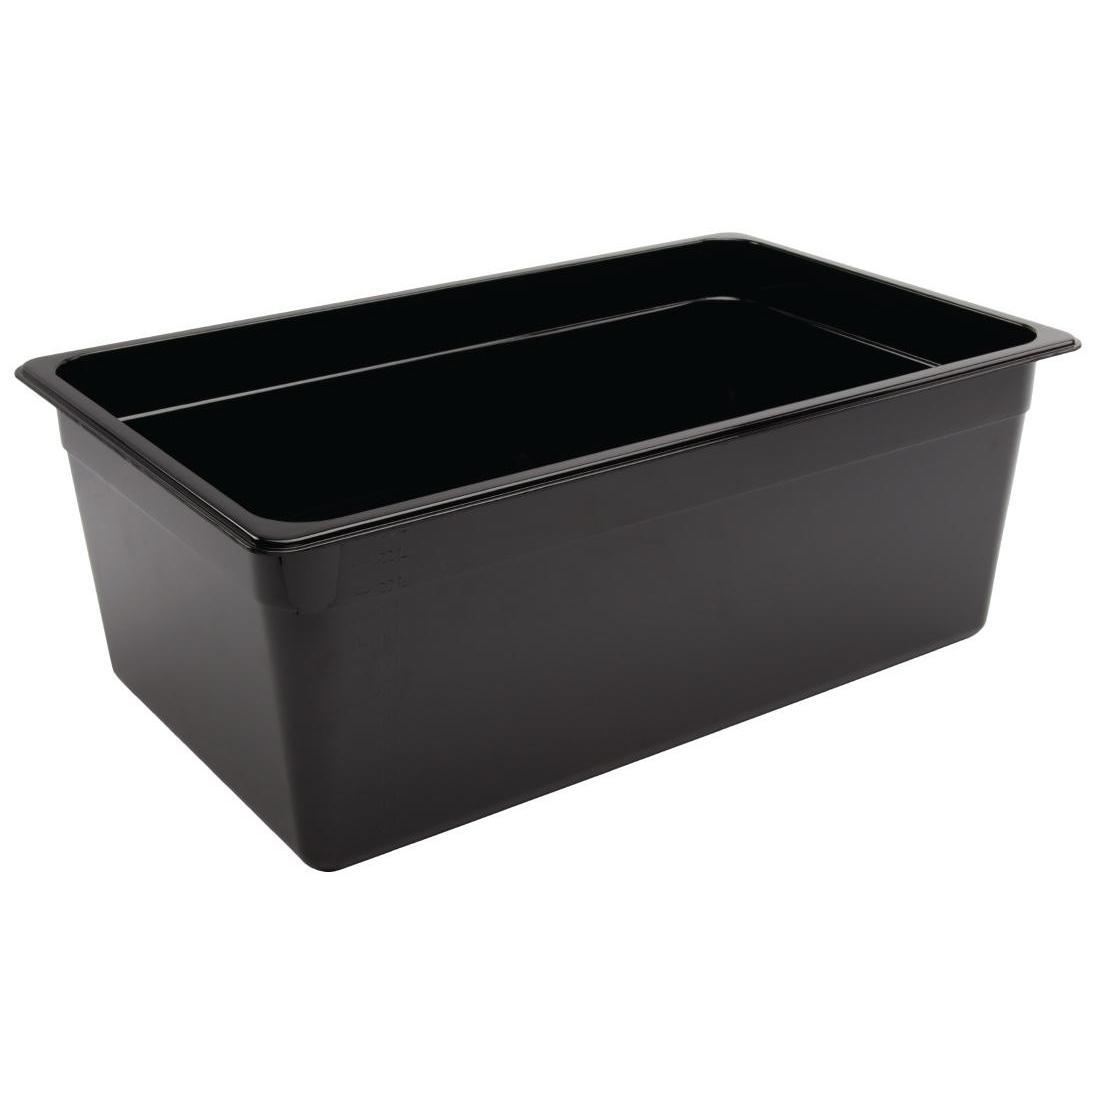 Vogue Polycarbonate 1/1 Gastronorm Container 200mm Black - U457